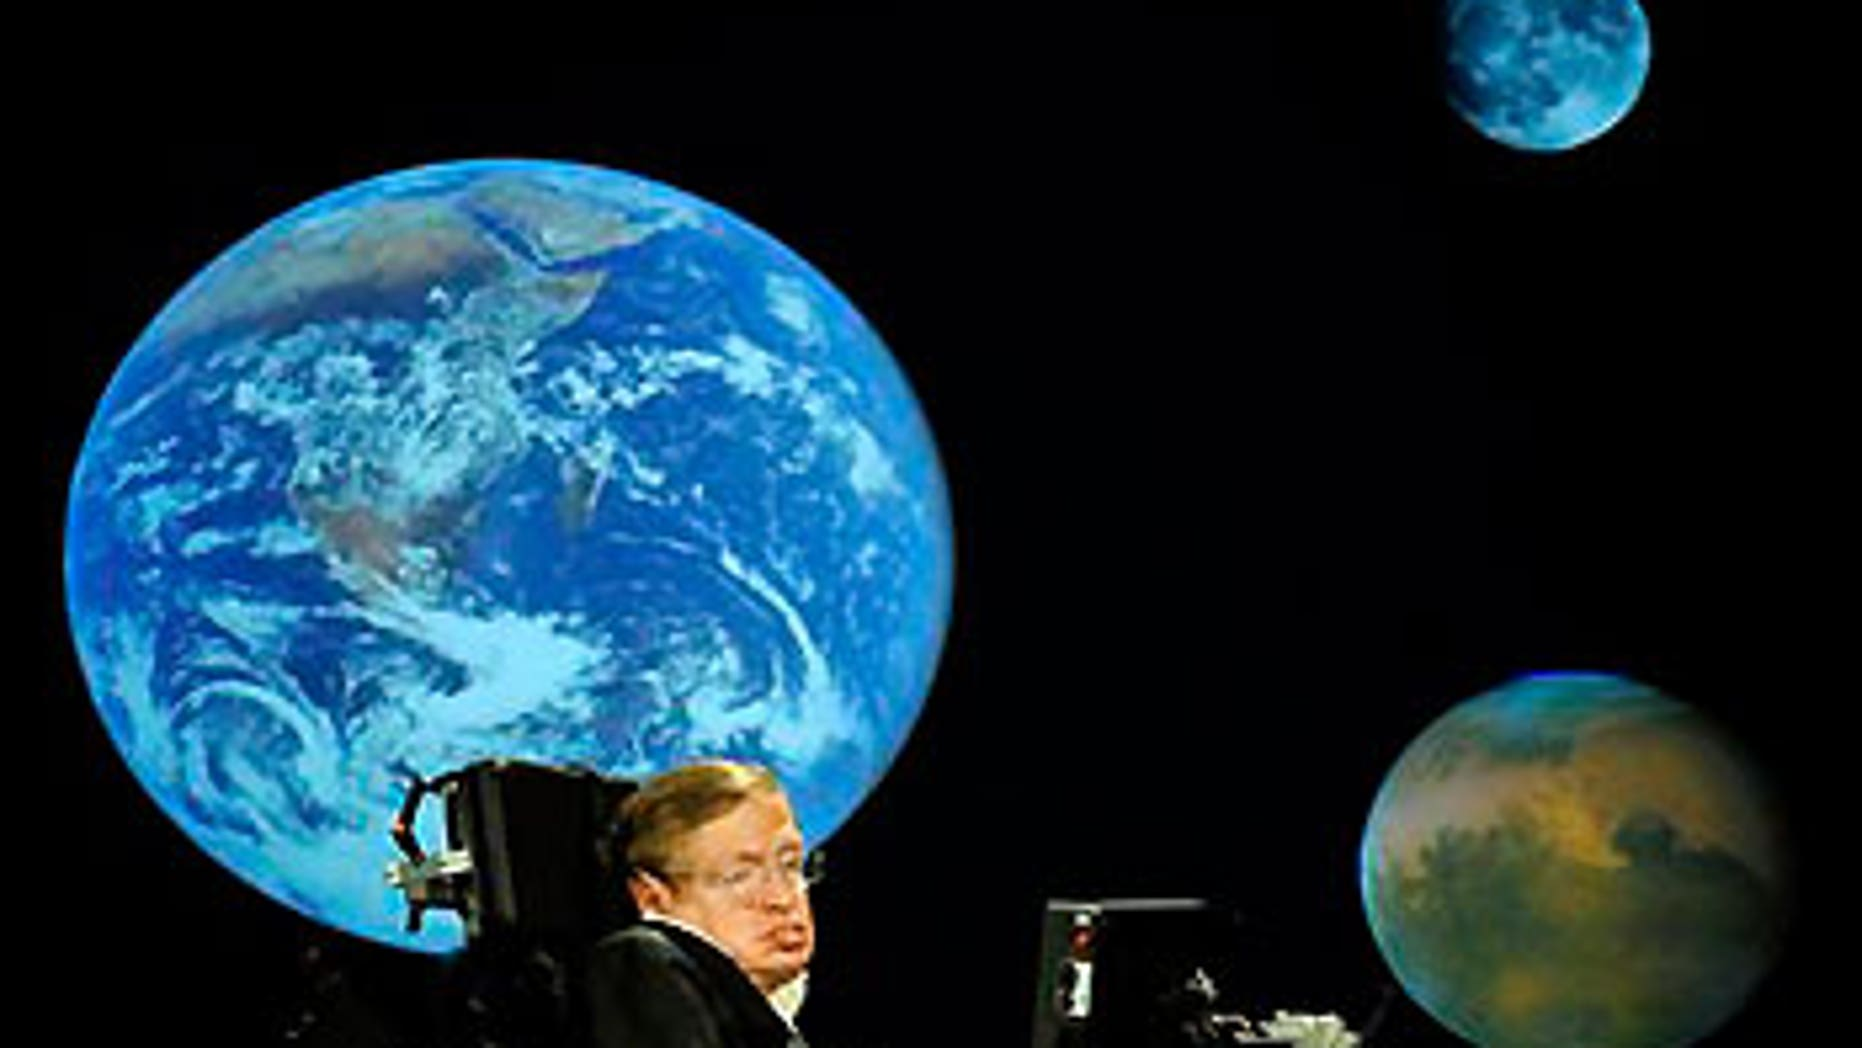 April 21, 2008: Dr. Stephen Hawking giving a lecture related to NASA's 50th anniversary at George Washington University in Washington, D.C.